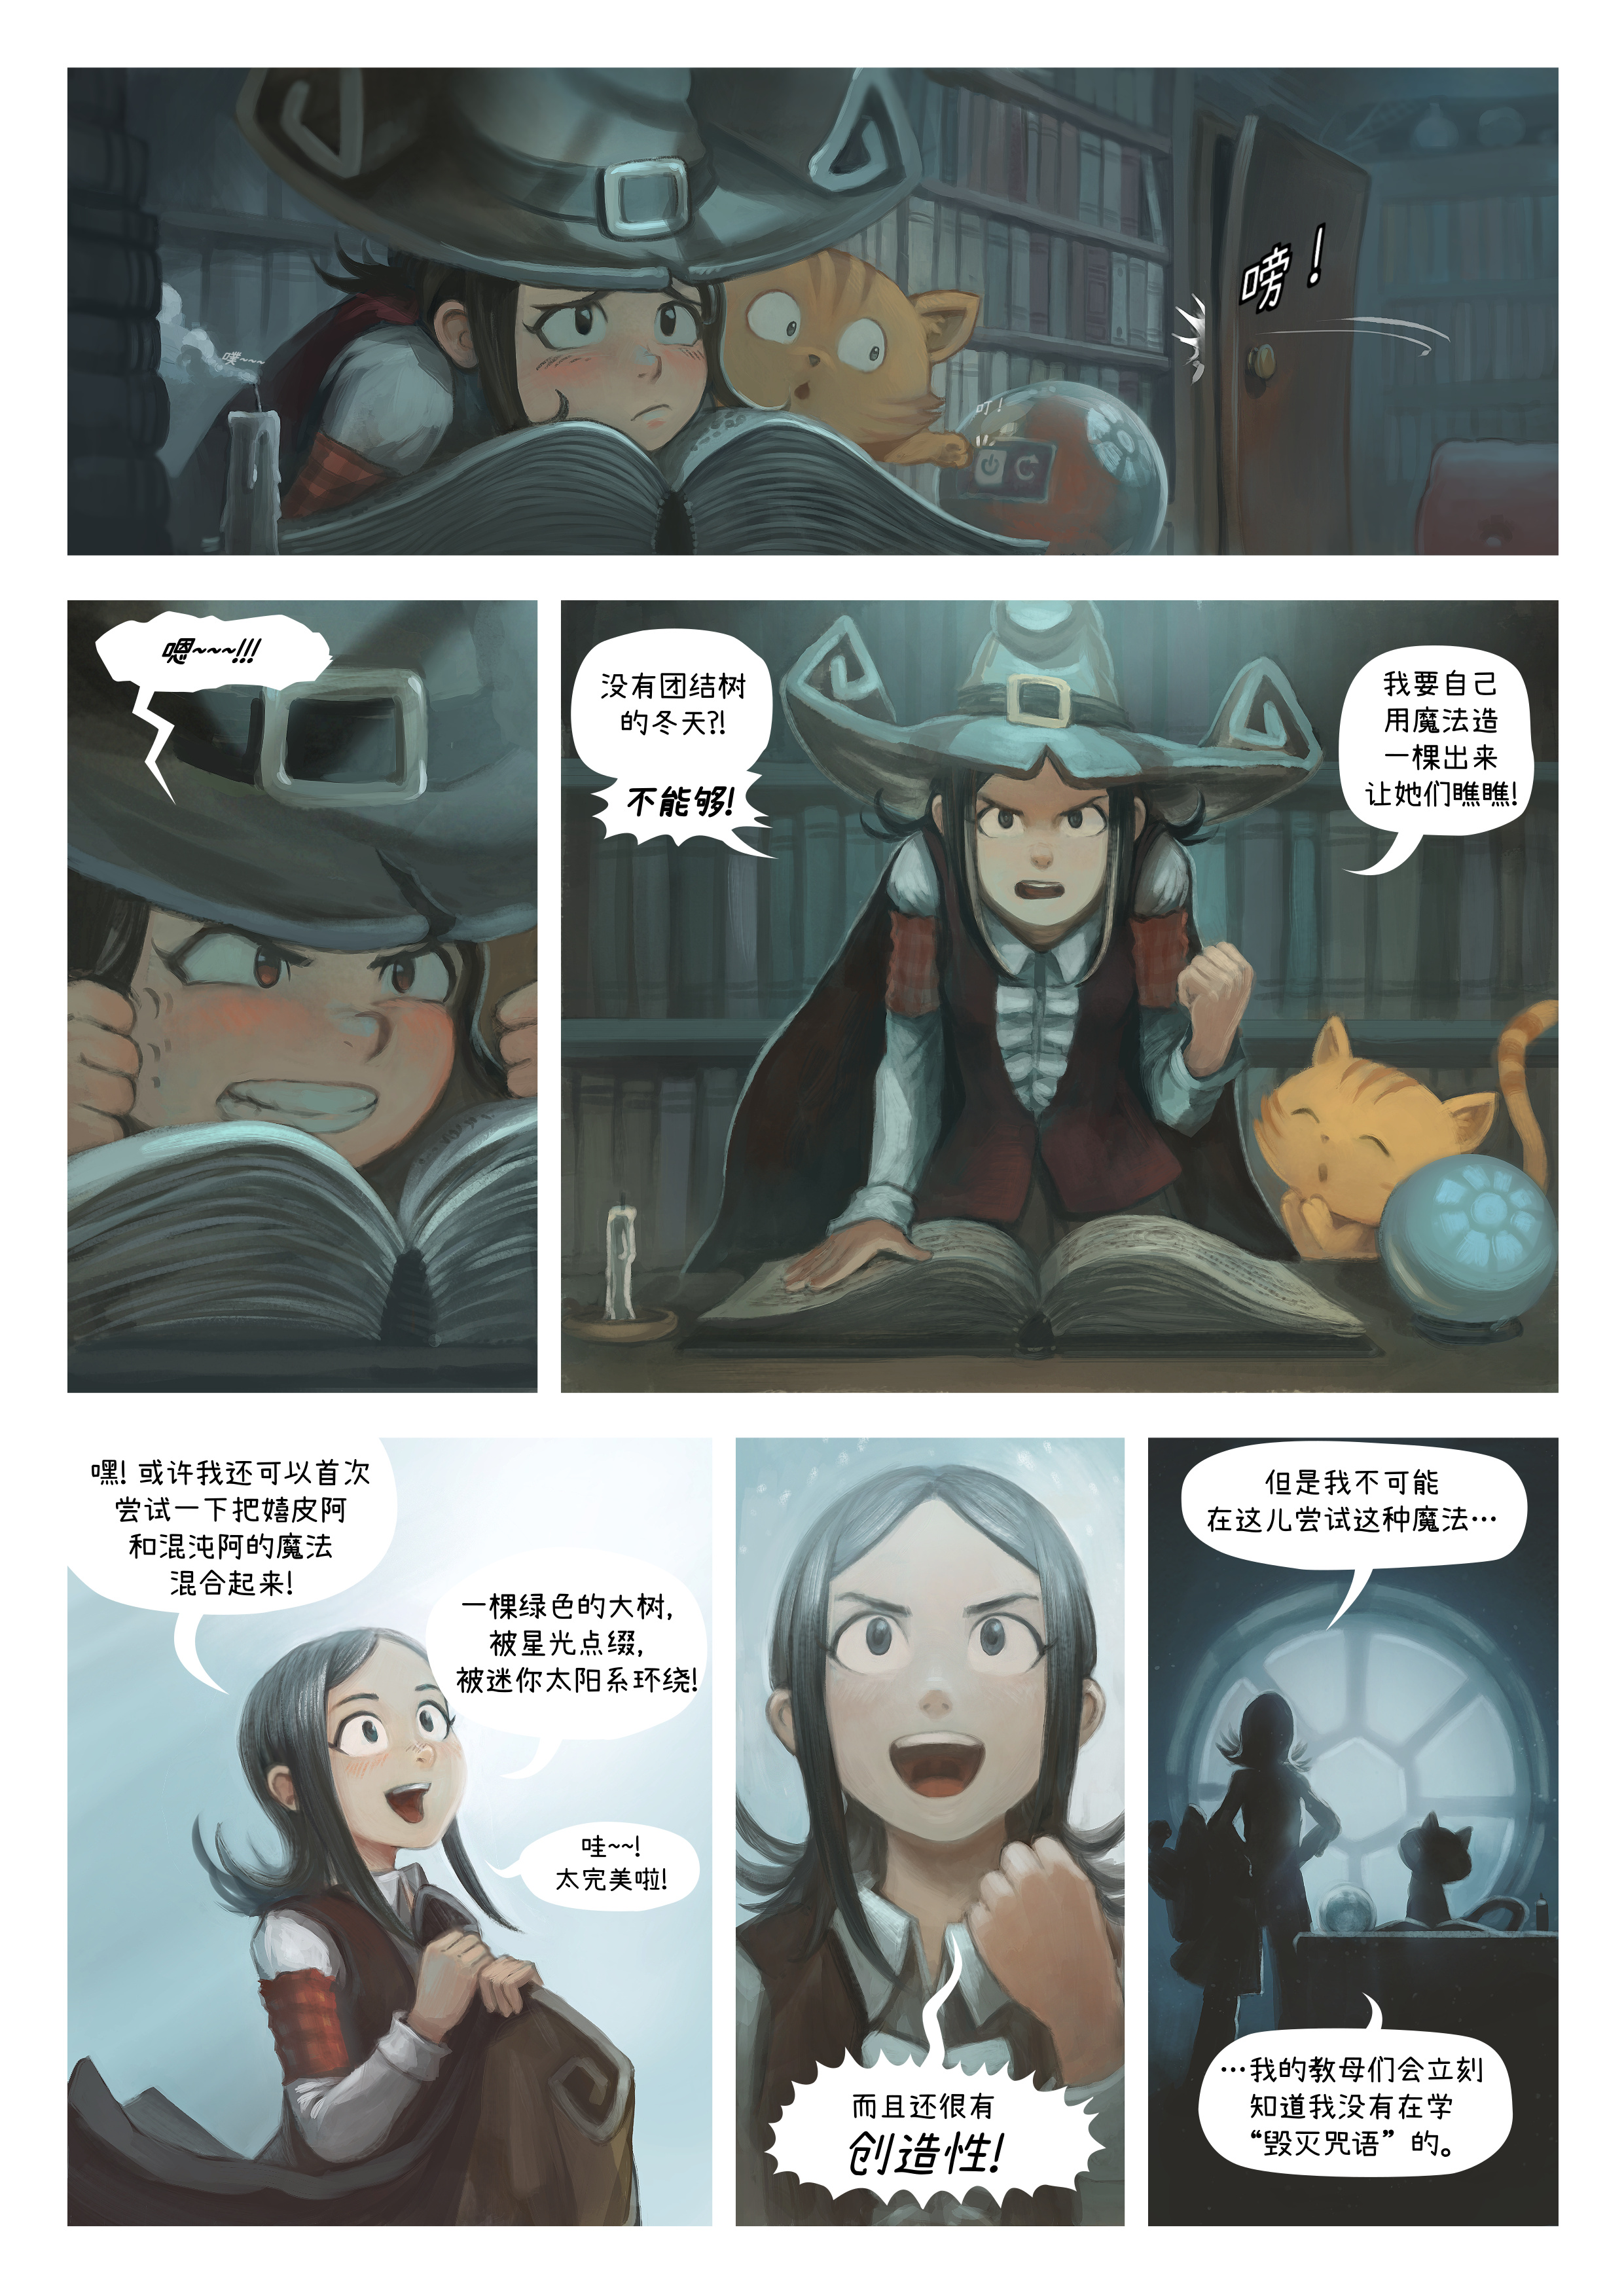 A webcomic page of Pepper&Carrot, 漫画全集 24 [cn], 页面 2